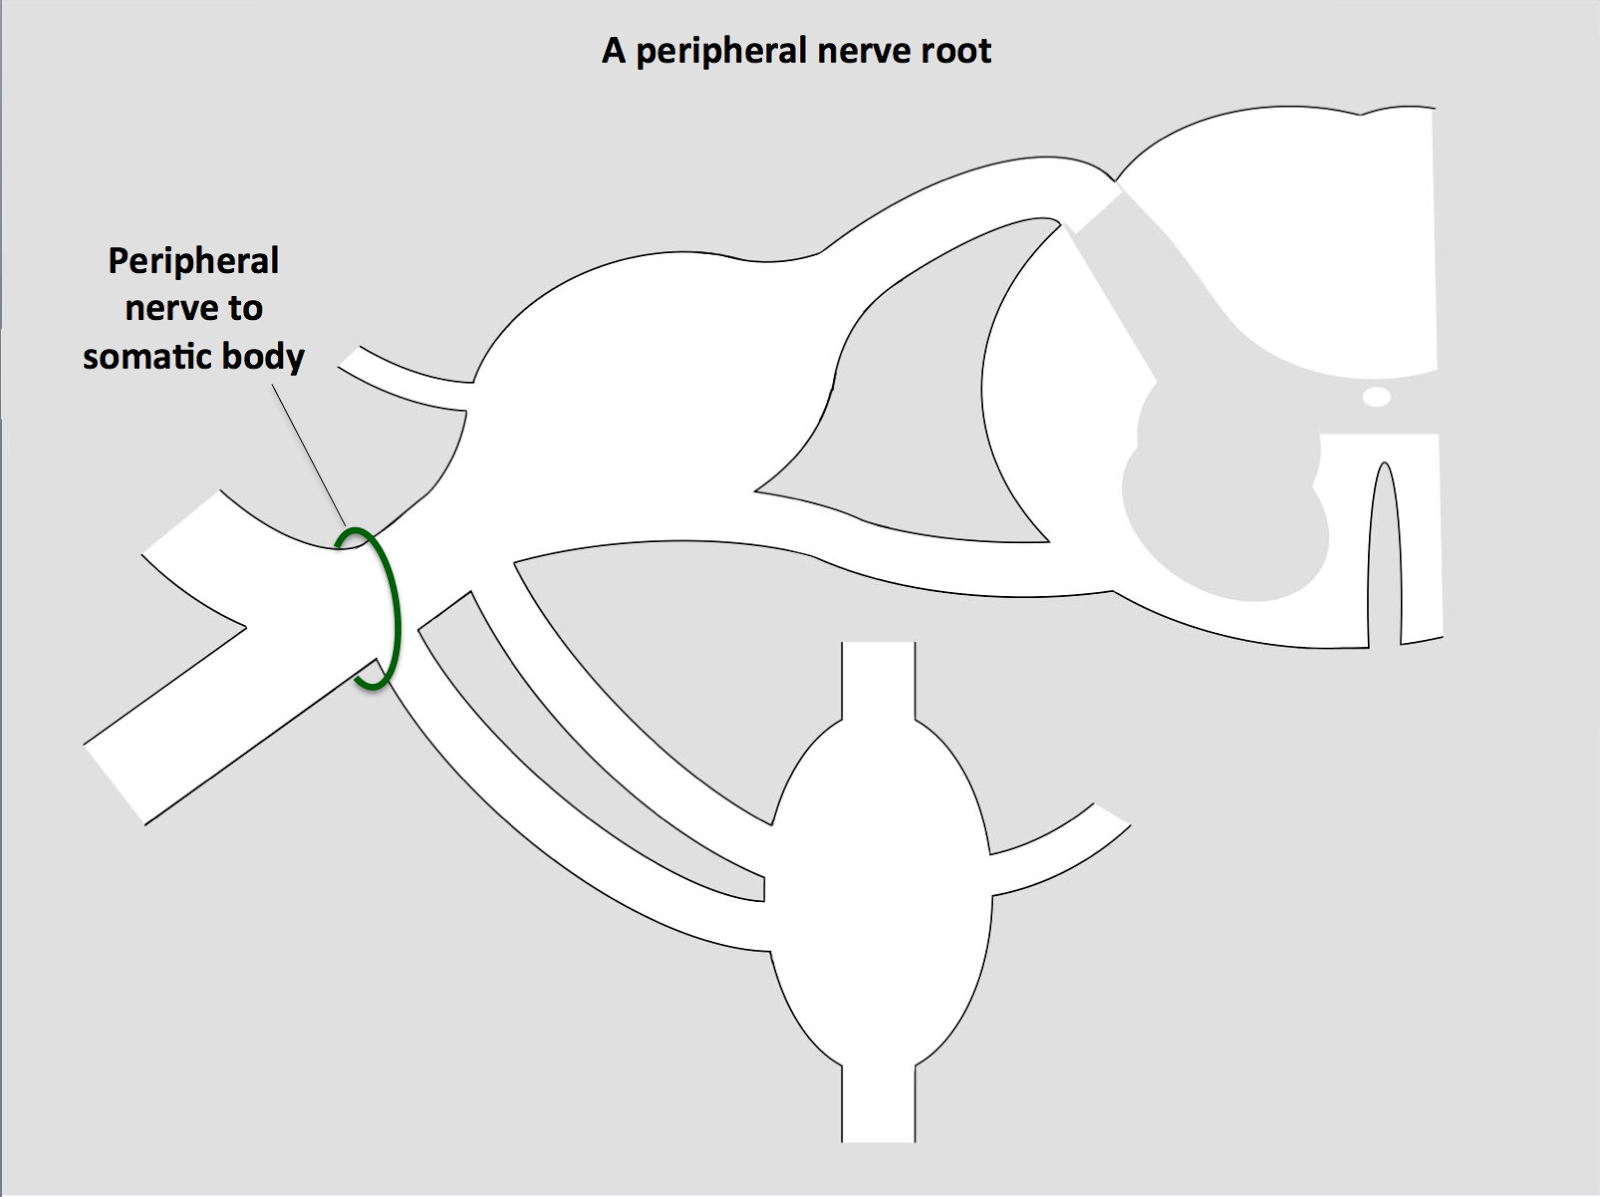 Humanantigravitysuit Anatomy Of A Peripheral Nerve Root